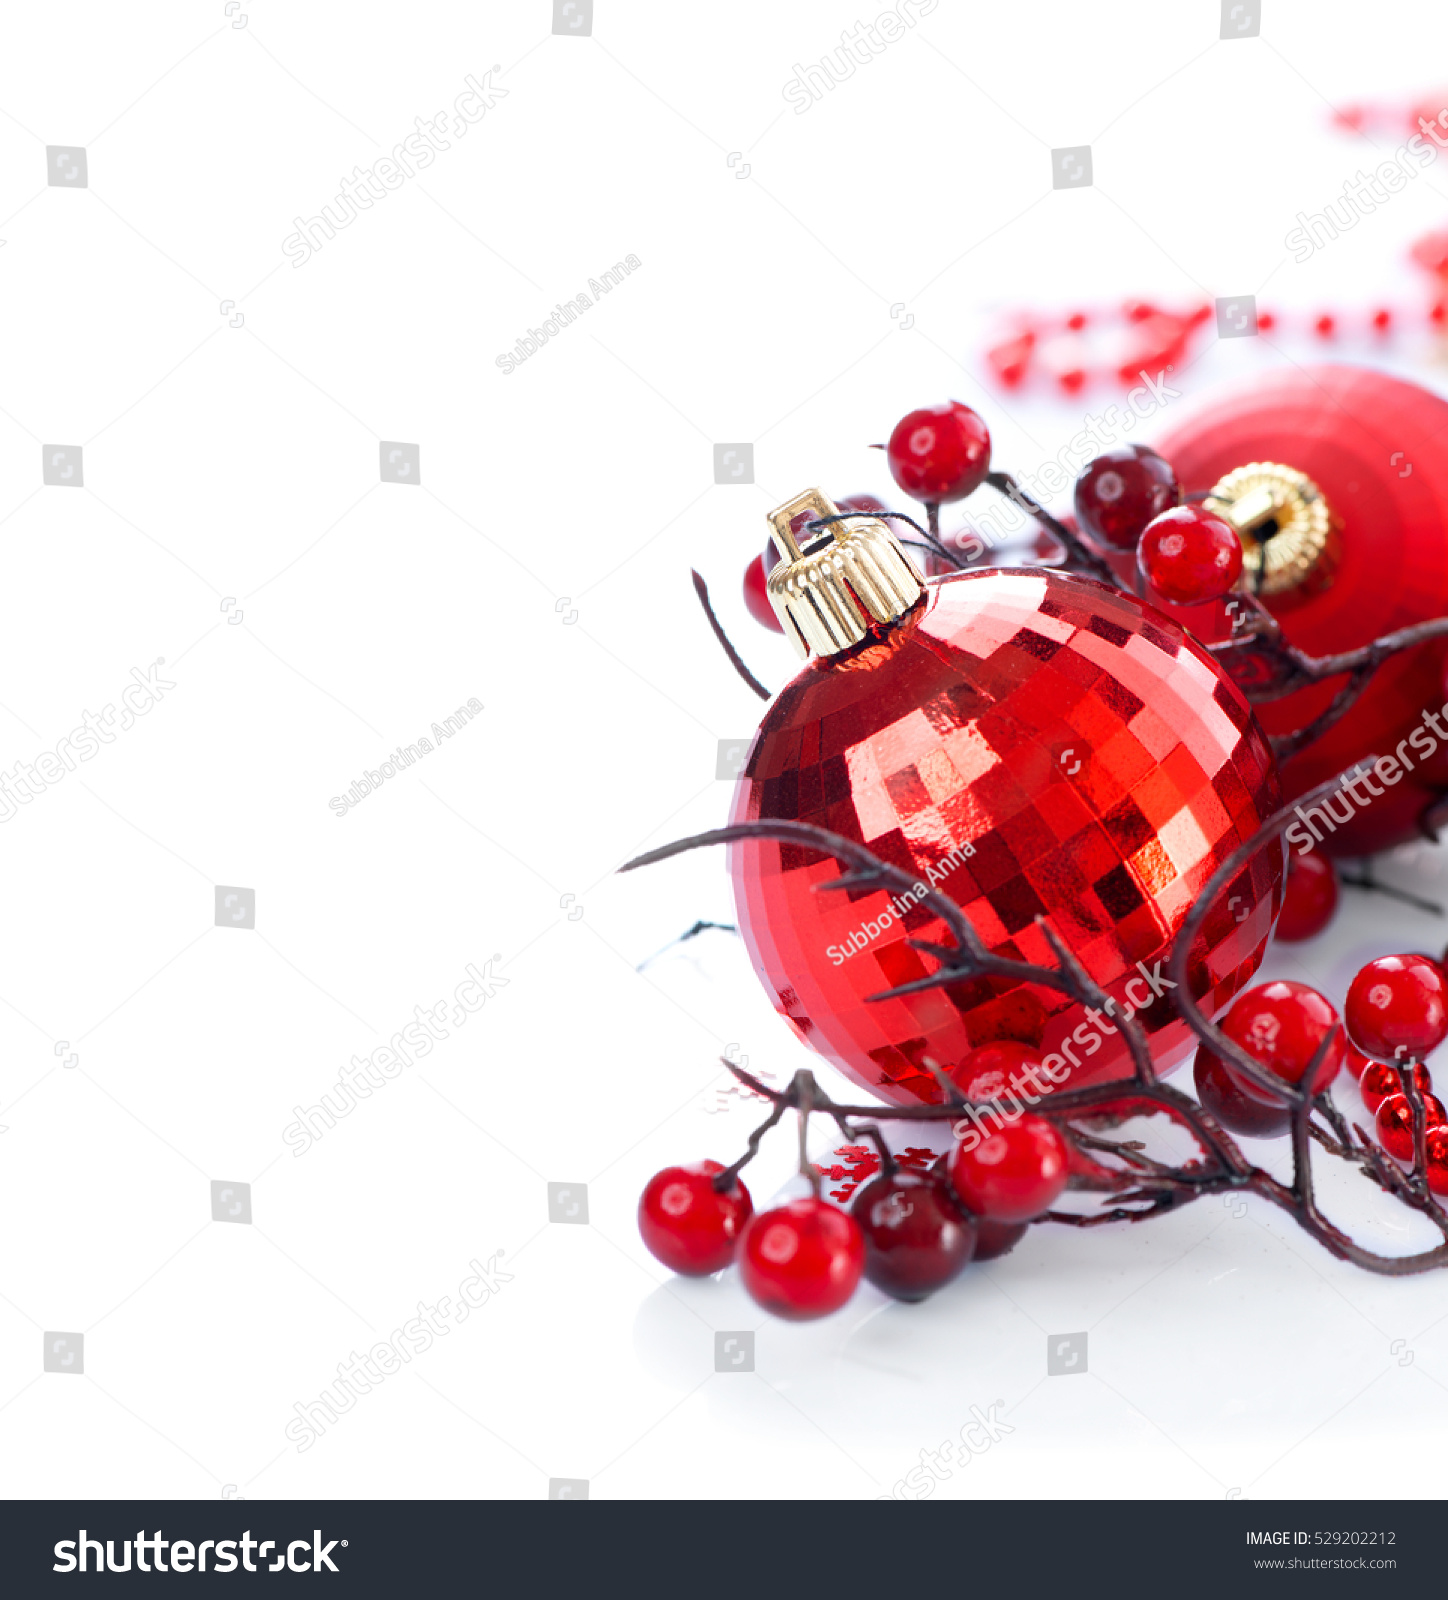 Red Christmas and New Year Decoration isolated on white background Border art design with holiday baubles Decorated with ball holly berry Space for your text